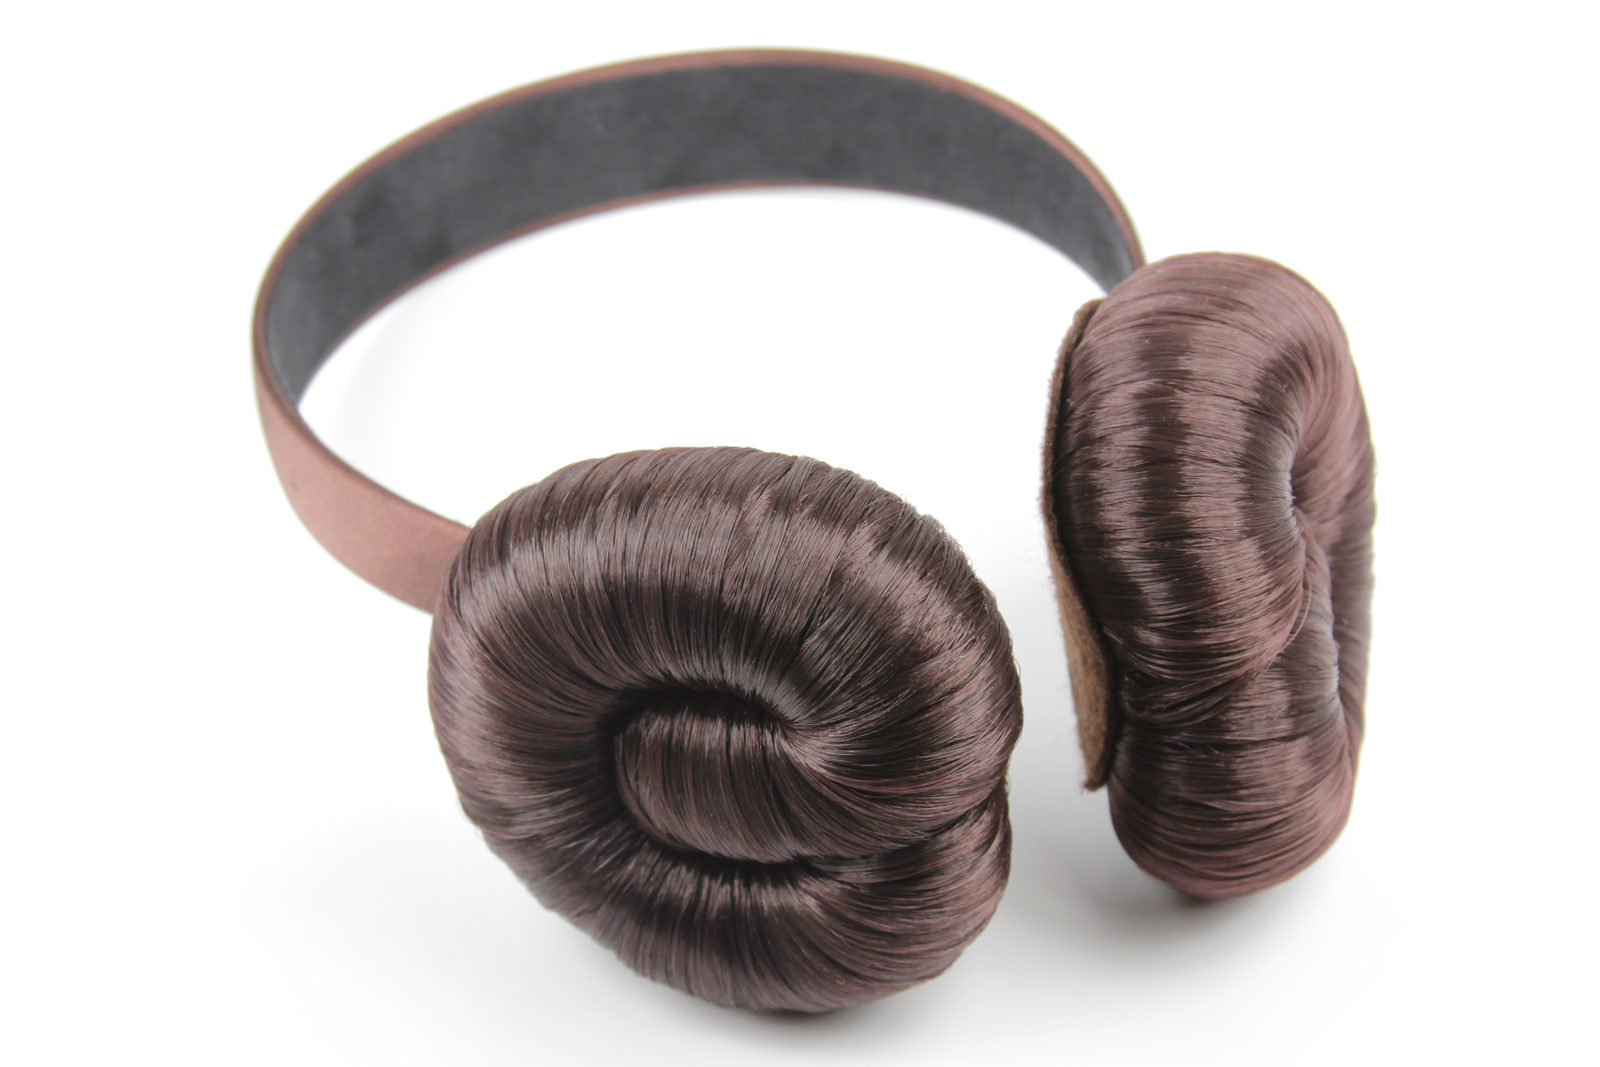 Review – Loungefly Princess Leia Headband